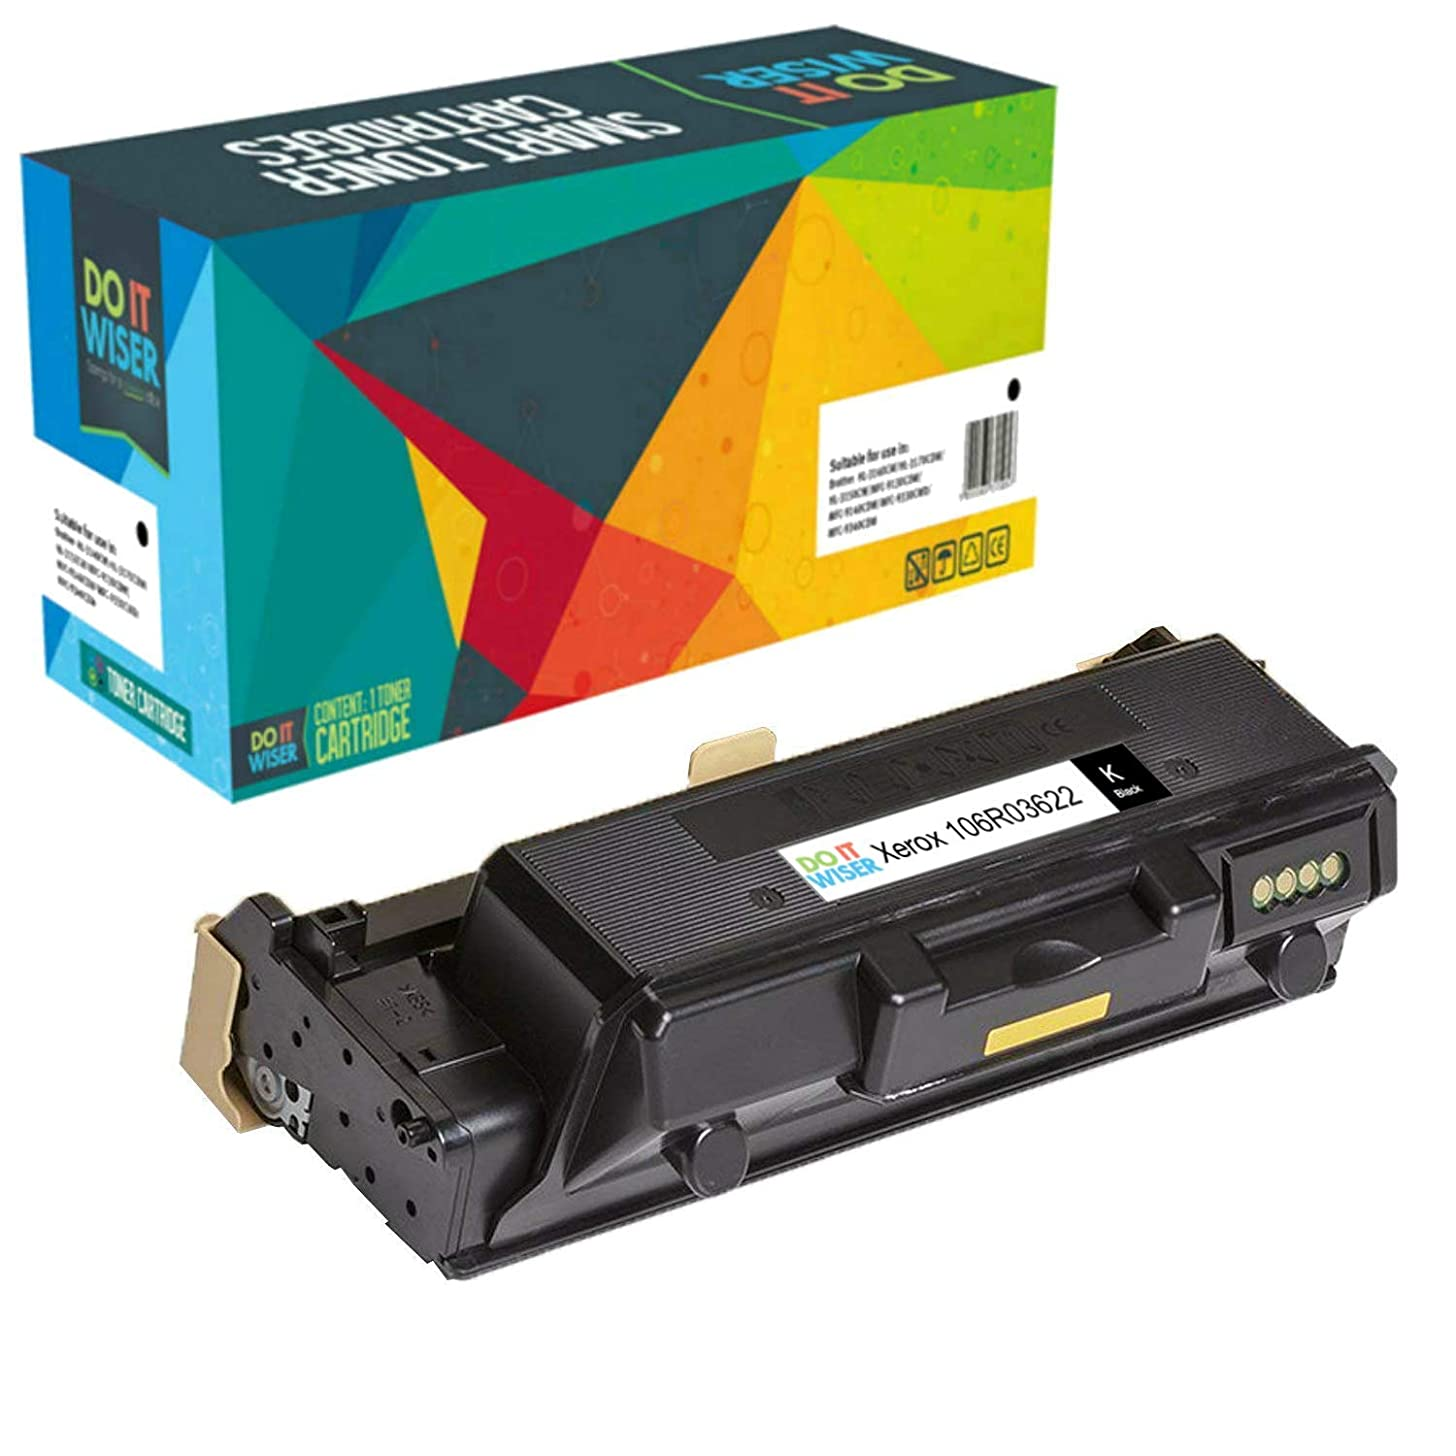 Do it Wiser Compatible Toner Cartridge Replacement for Xerox 106R03622 WorkCentre 3335 3345 Phaser 3330 Toner - 106R03621-8,500 Pages